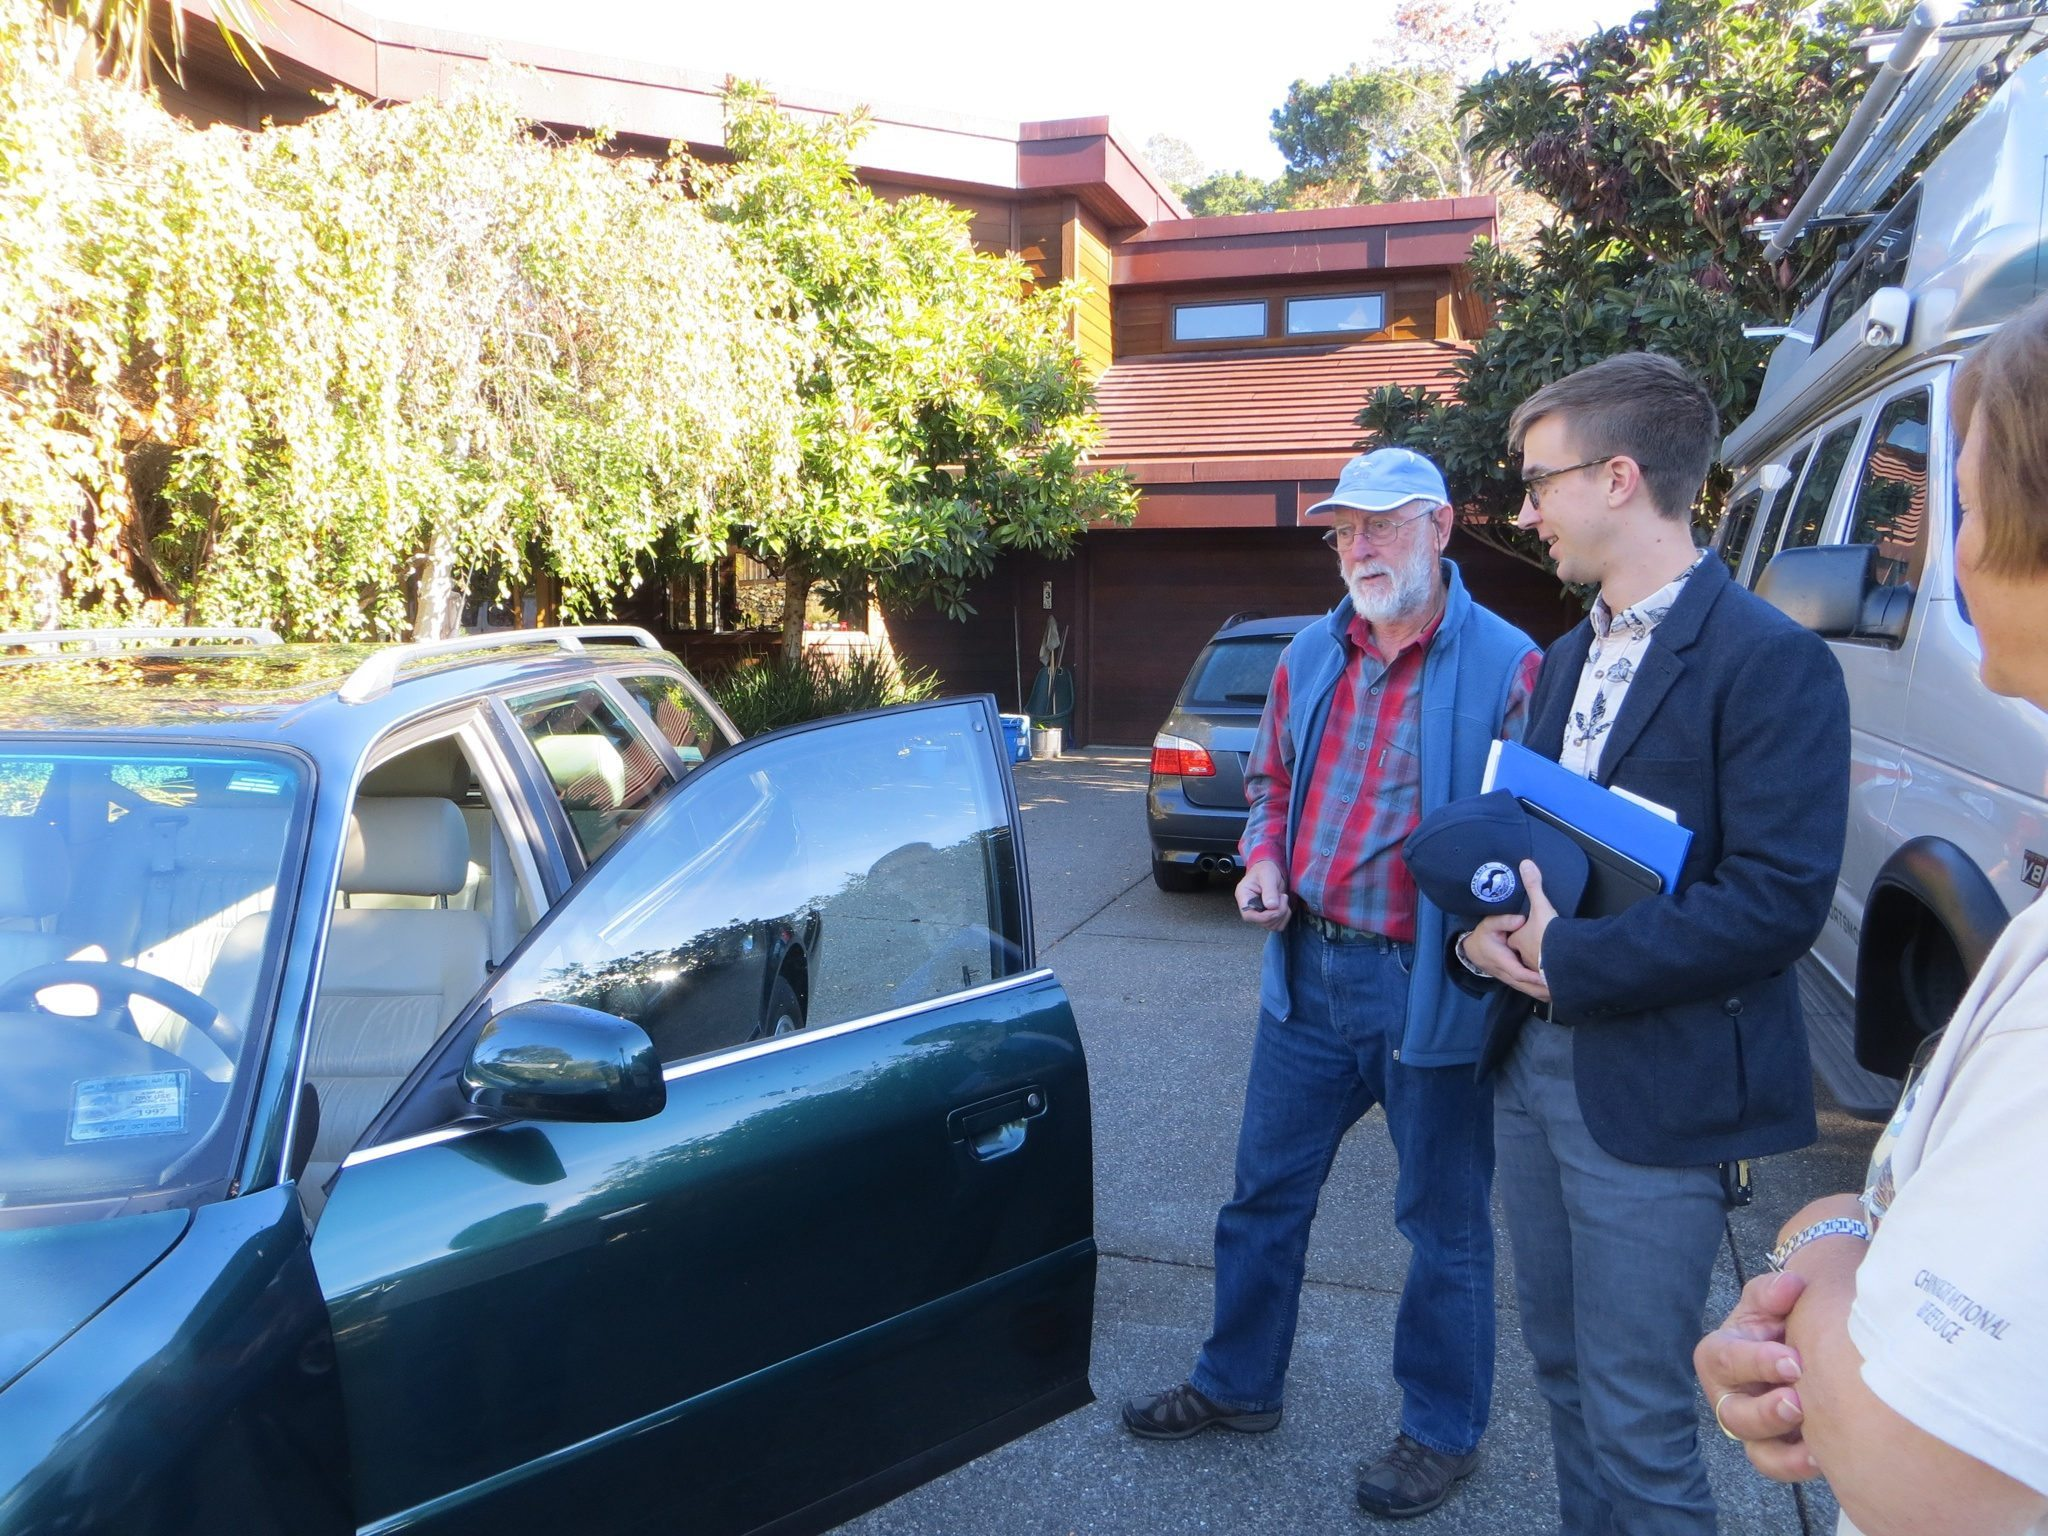 GGAS Office Manager Ben Sisson picks up the donated Audi from Bill and Helen Lindqvist / Photo by Ilana DeBare